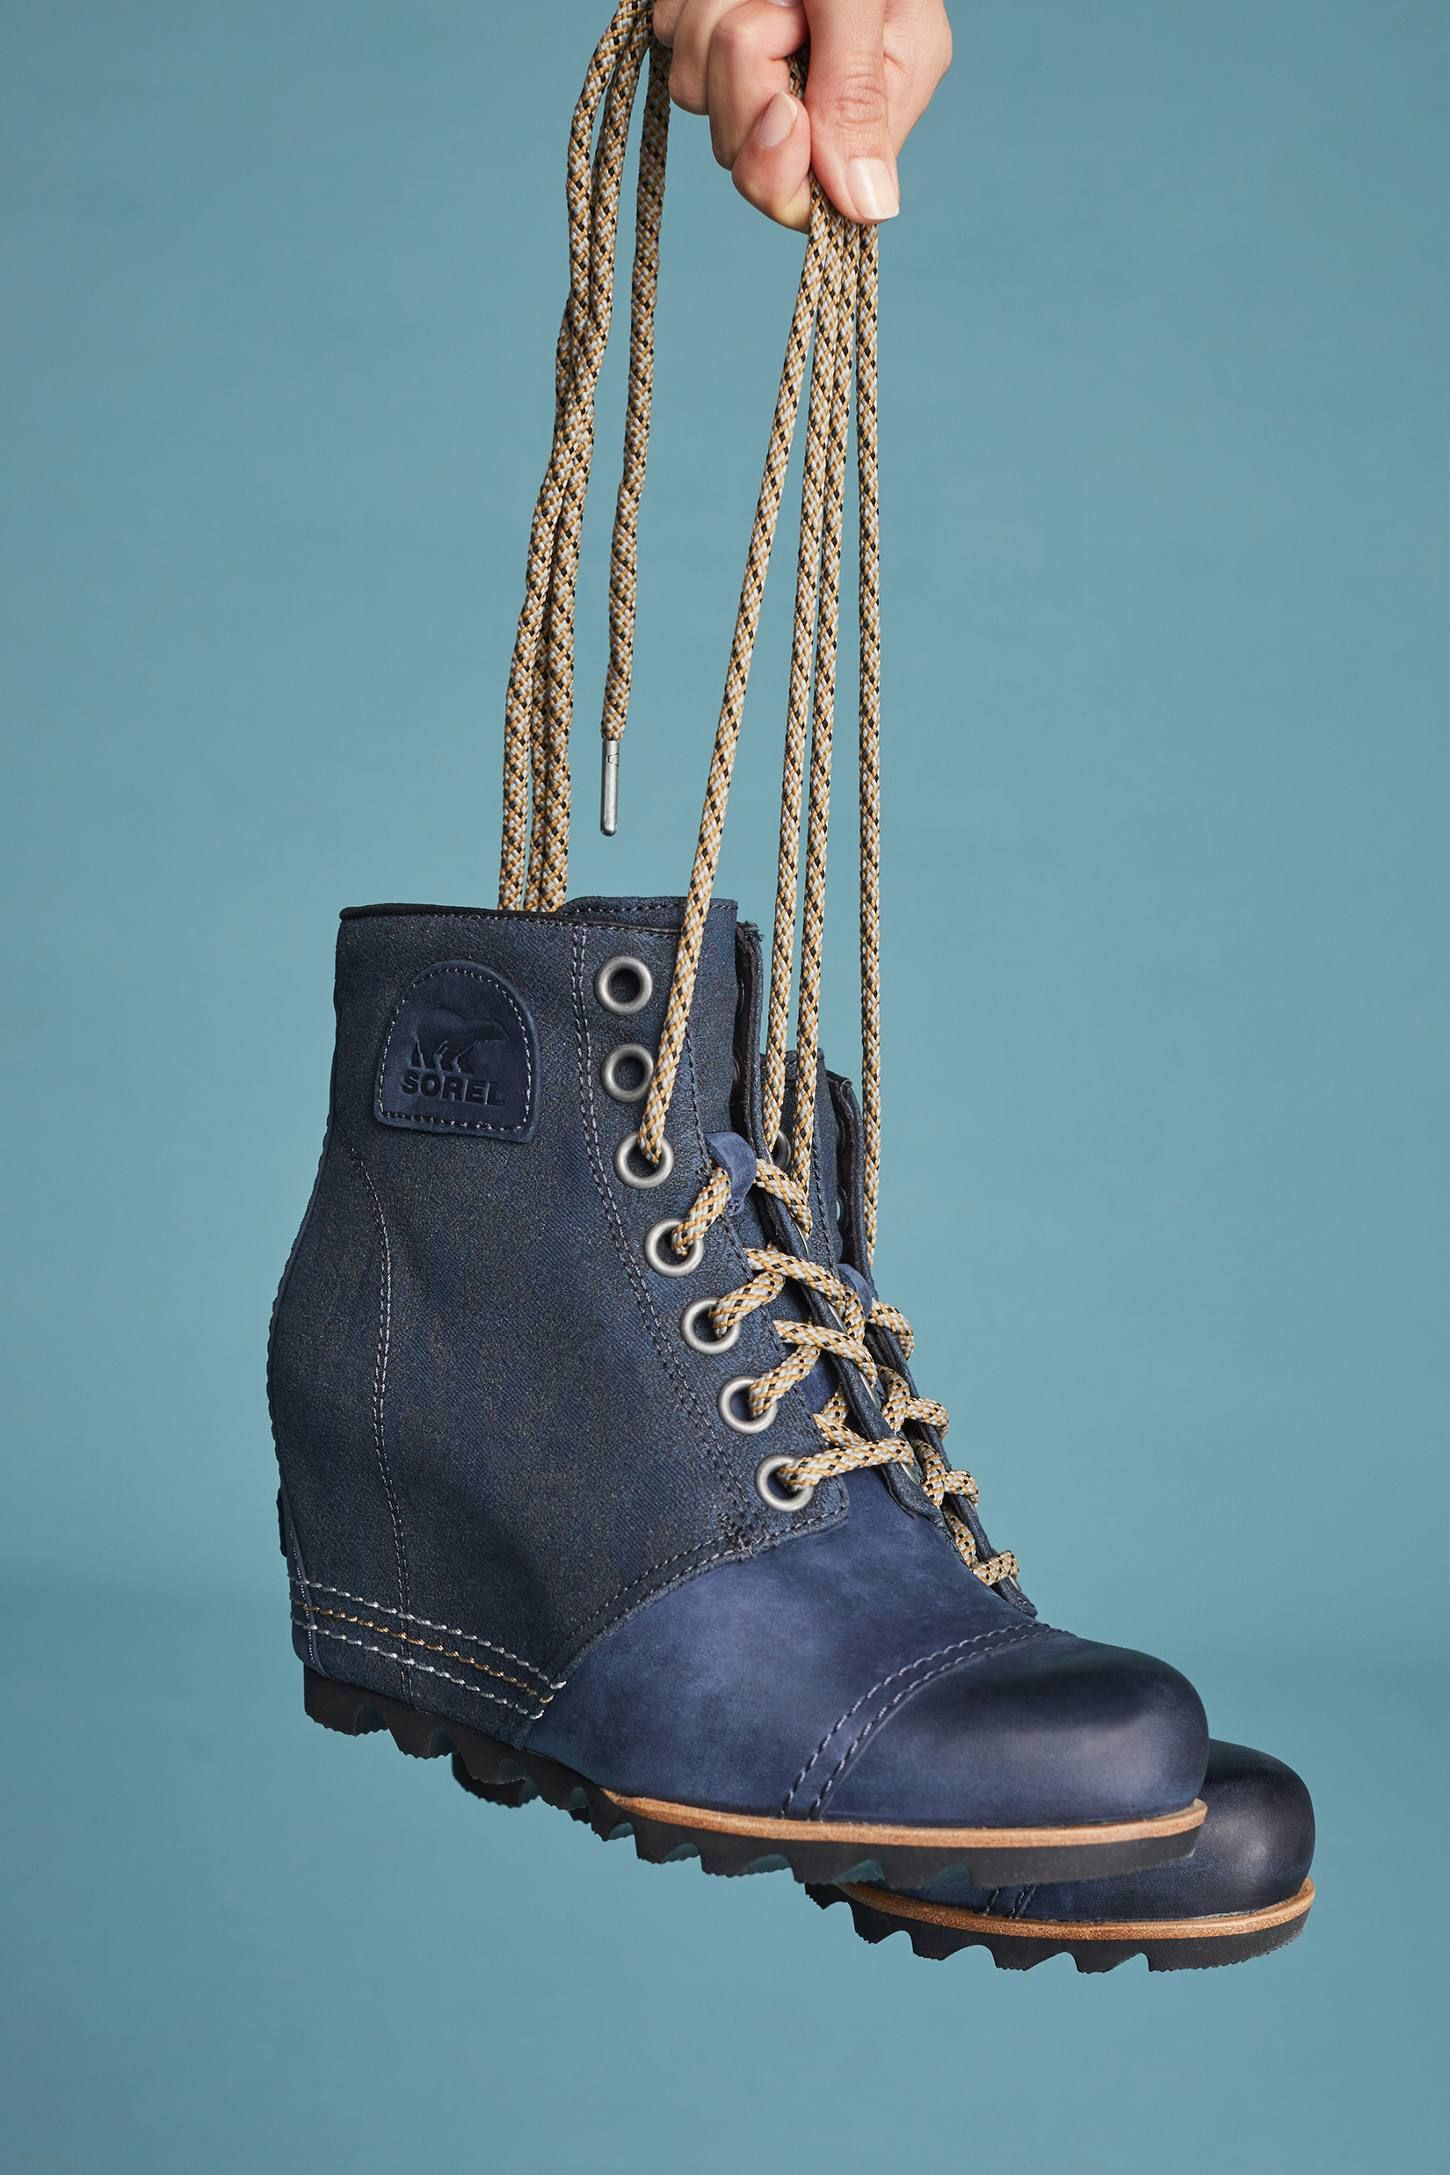 00b1e57ecc3a Sorel PDX Wedge Boots  ad  AnthroFave  AnthroRegistry Anthropologie ...